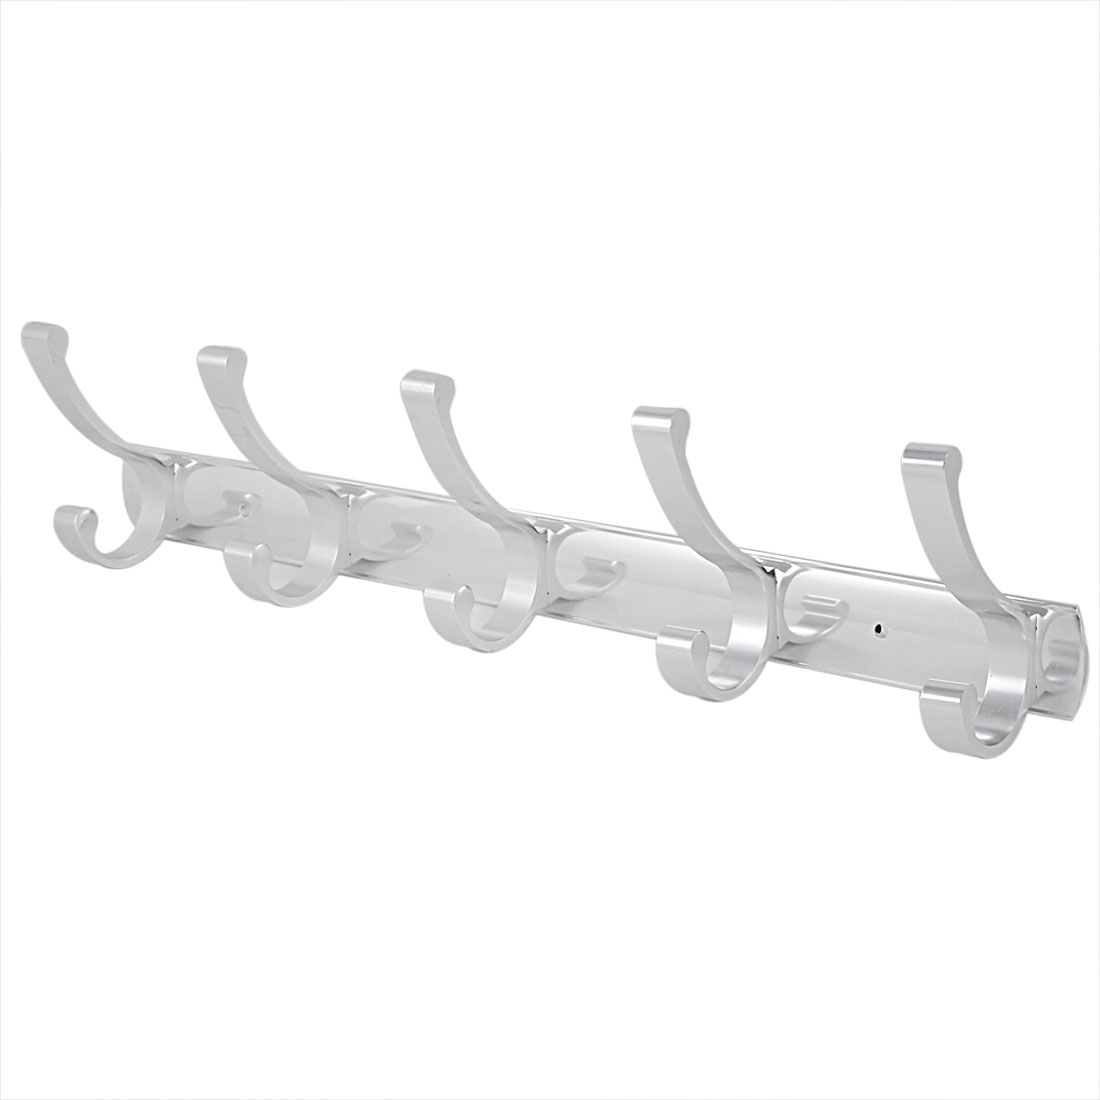 Coat Hat Towel Hanging Wall Mounted 5 Hooks Rail Rack